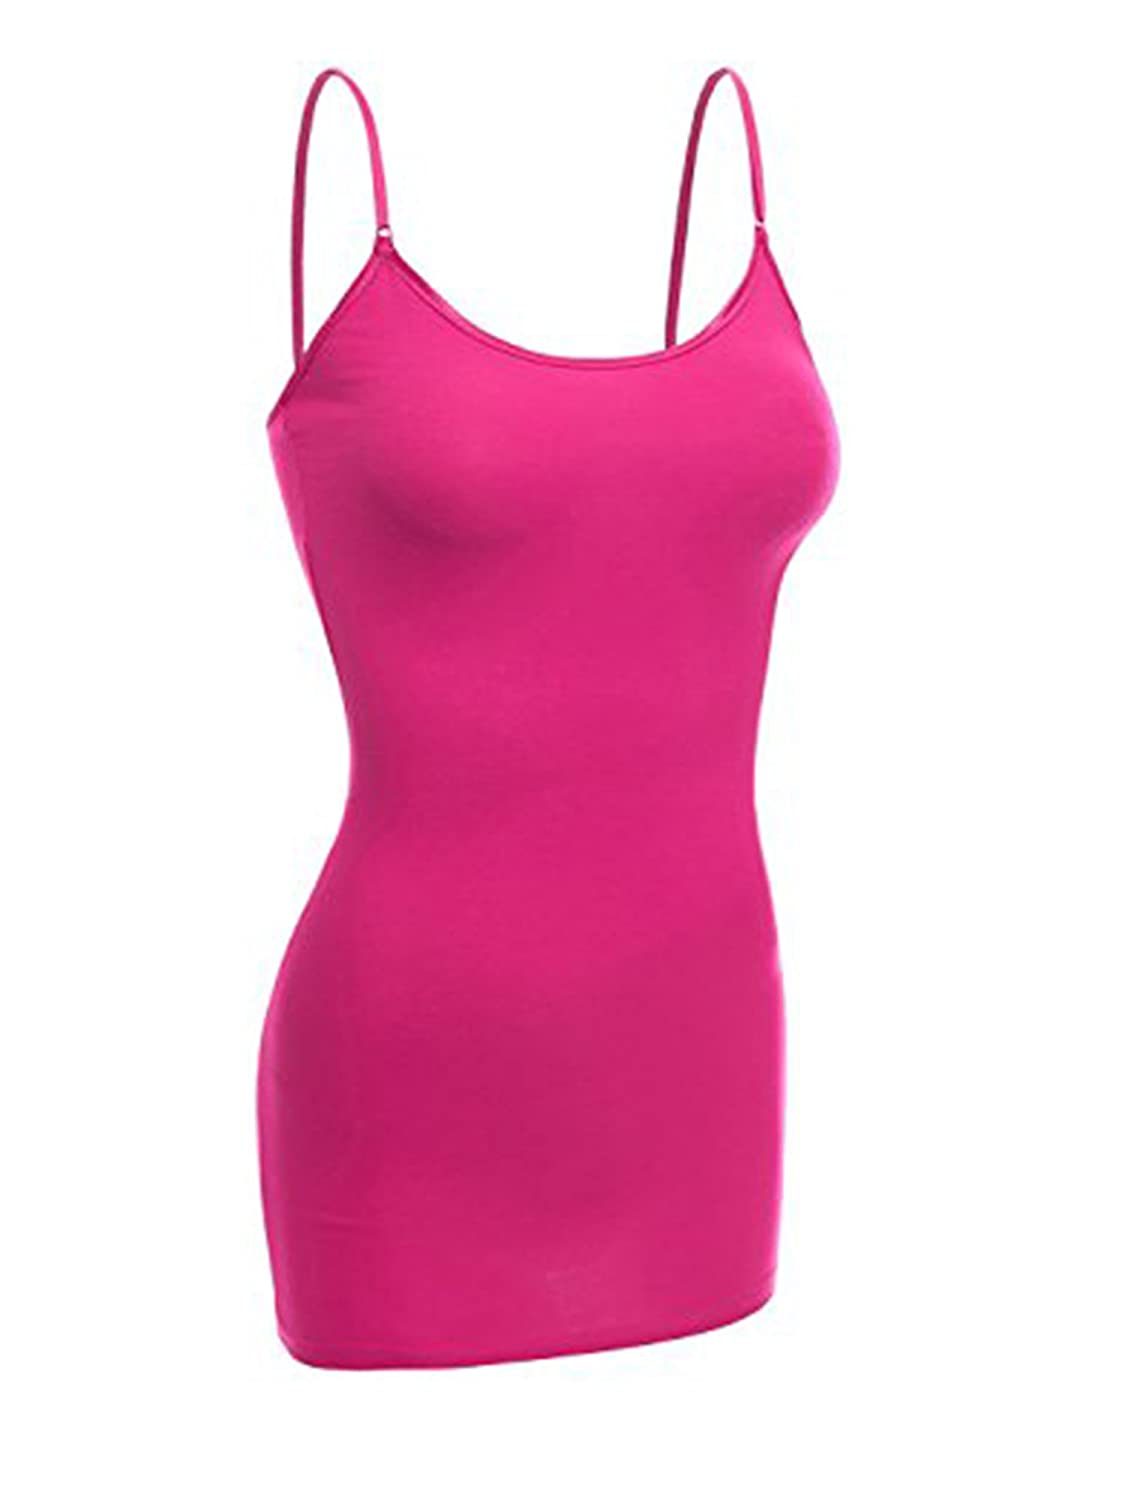 83359359e13be Active Basic Women s Basic Casual Plain Camisole Cami Top Tank Fuschia 2XL  at Amazon Women s Clothing store